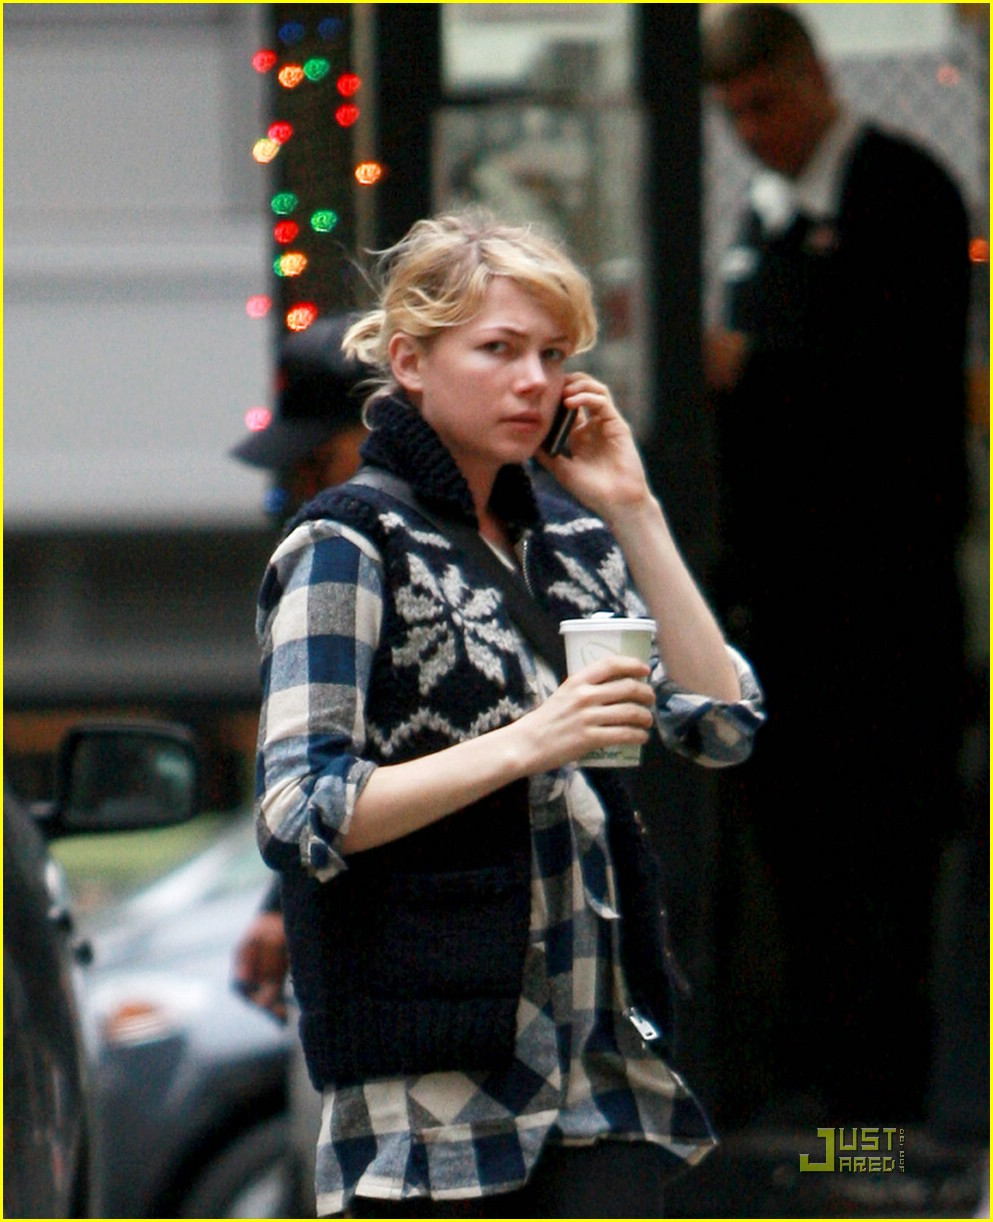 Full Sized Photo of michelle williams wendy lucy gift 02 ... Michelle Williams